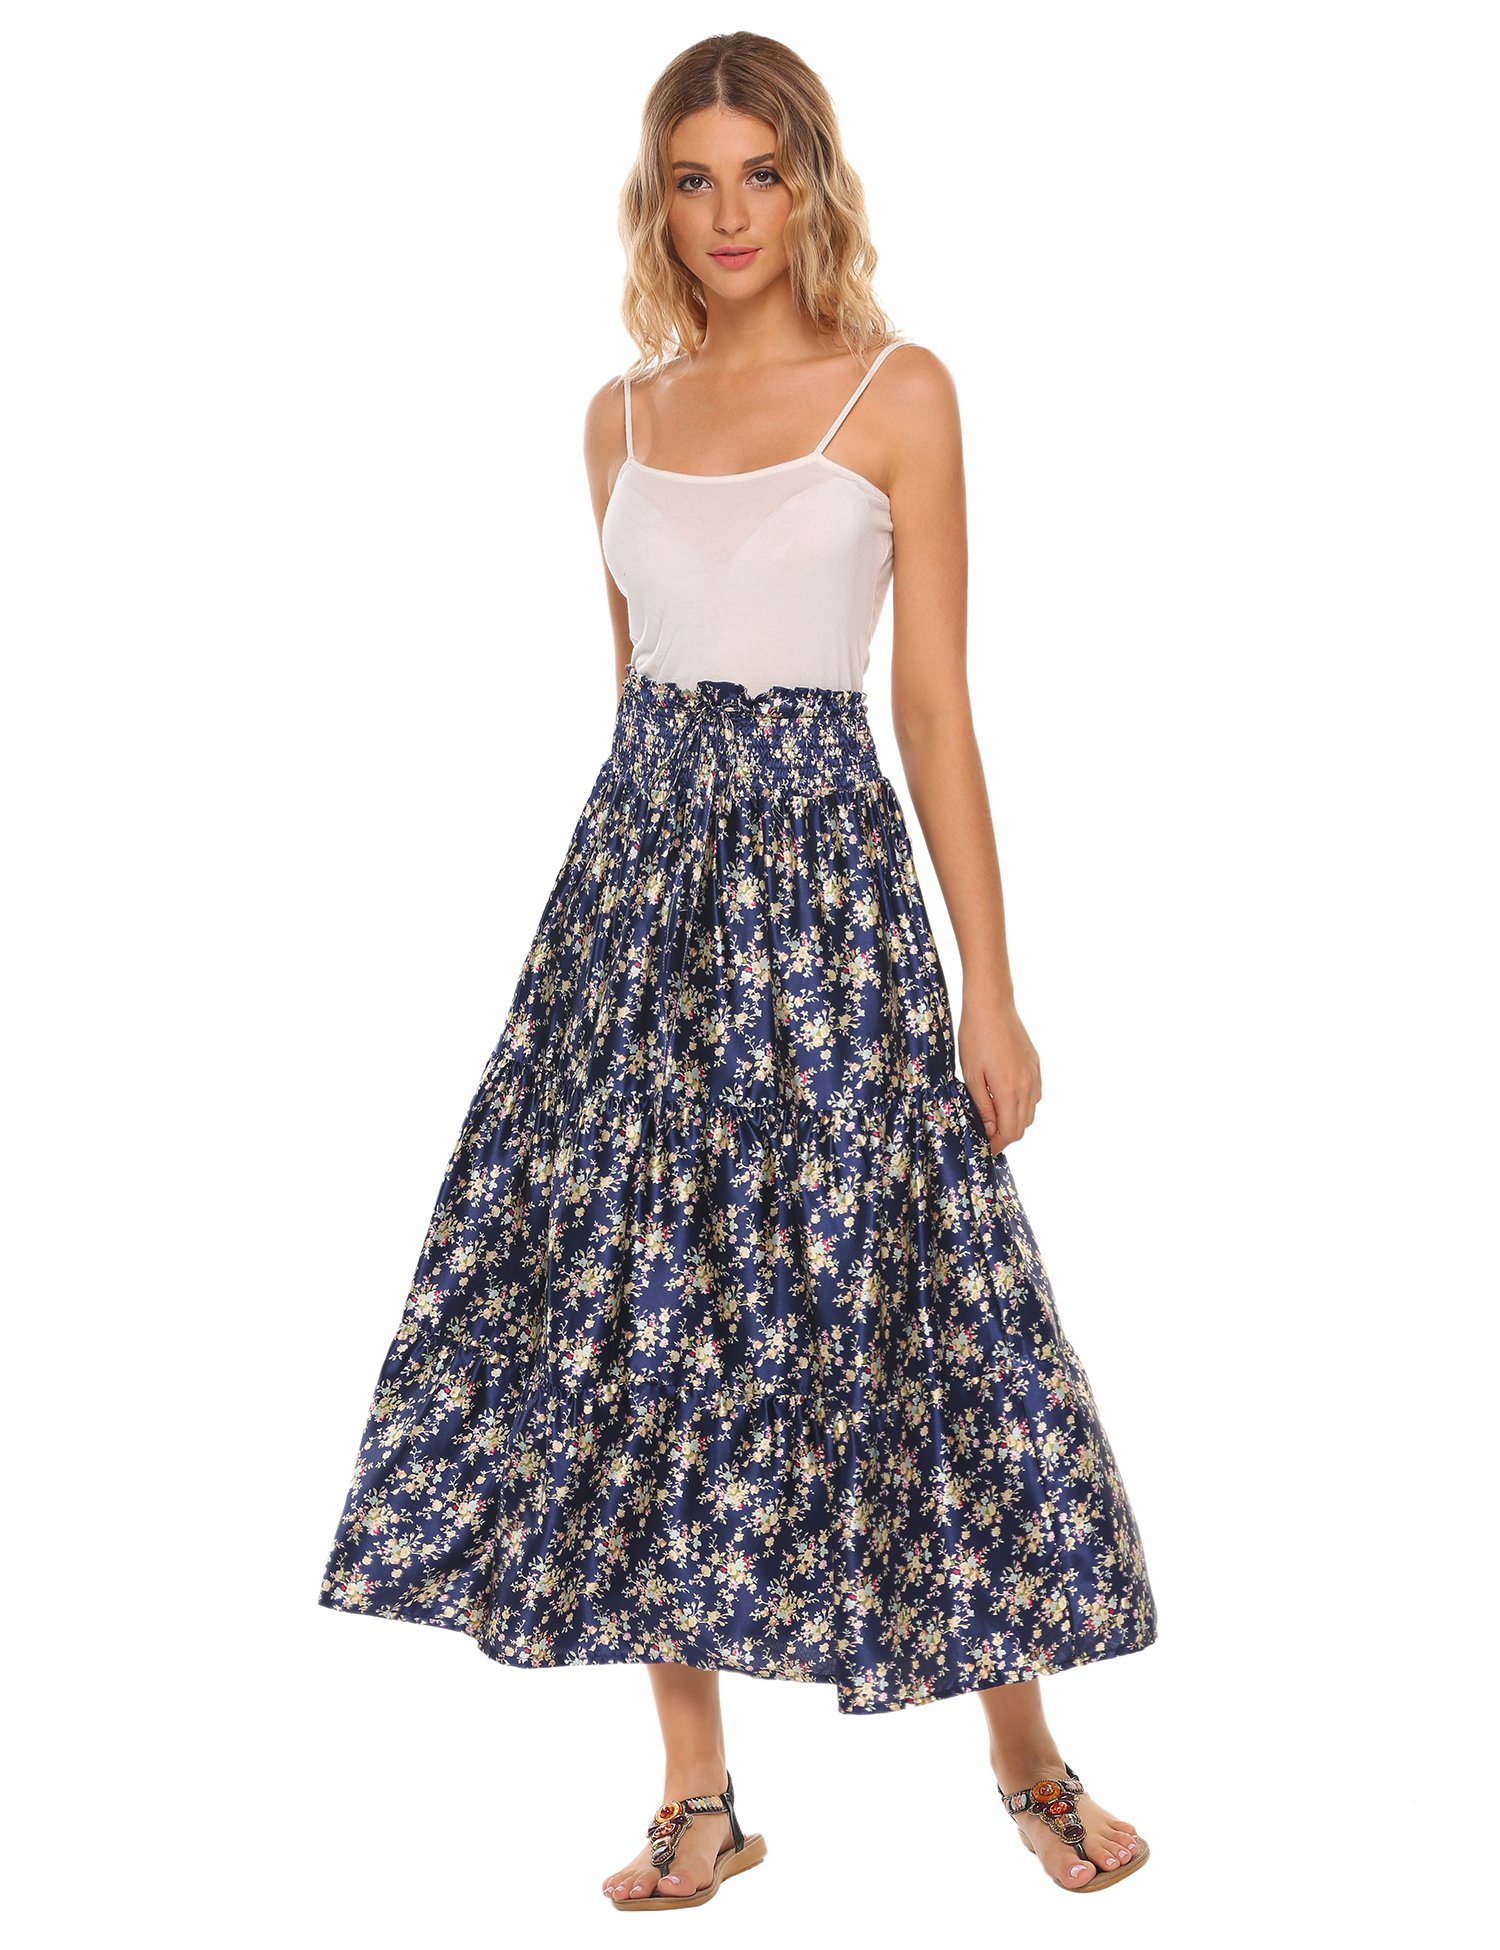 satin skirt,Womens Summer Boho Style Tiered Maxi Skirt With Belt by Chigant